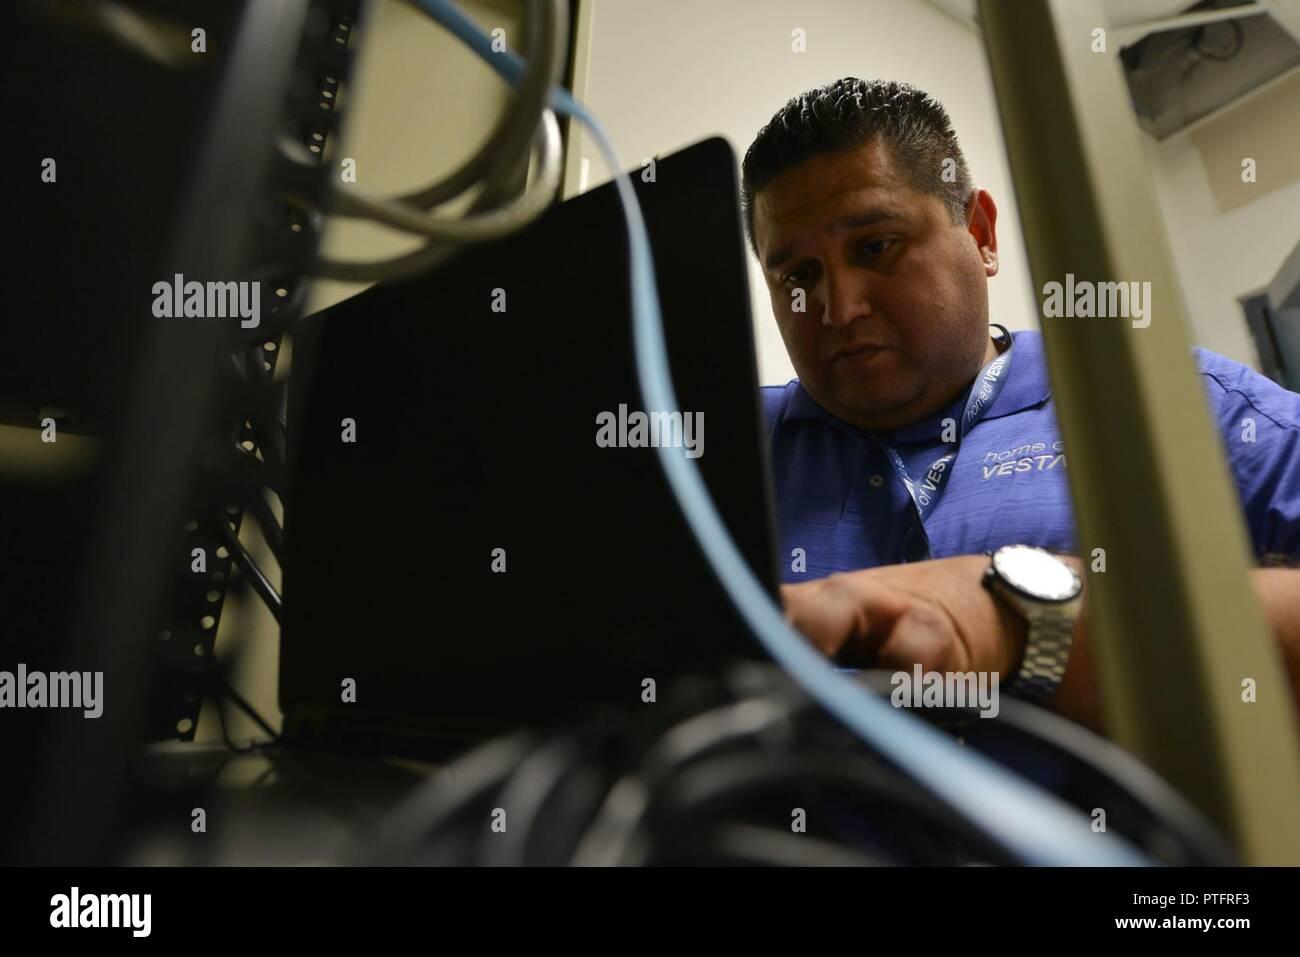 Jimmie De Armes, field engineer, configures a route from the emergency consoles to the communications server to allow the two systems to communicate at Shaw Air Force Base, S.C., July 12, 2017. De Armes configured the route for the Enhanced 911 system which received software and hardware updates, increasing speed and security. Stock Photo